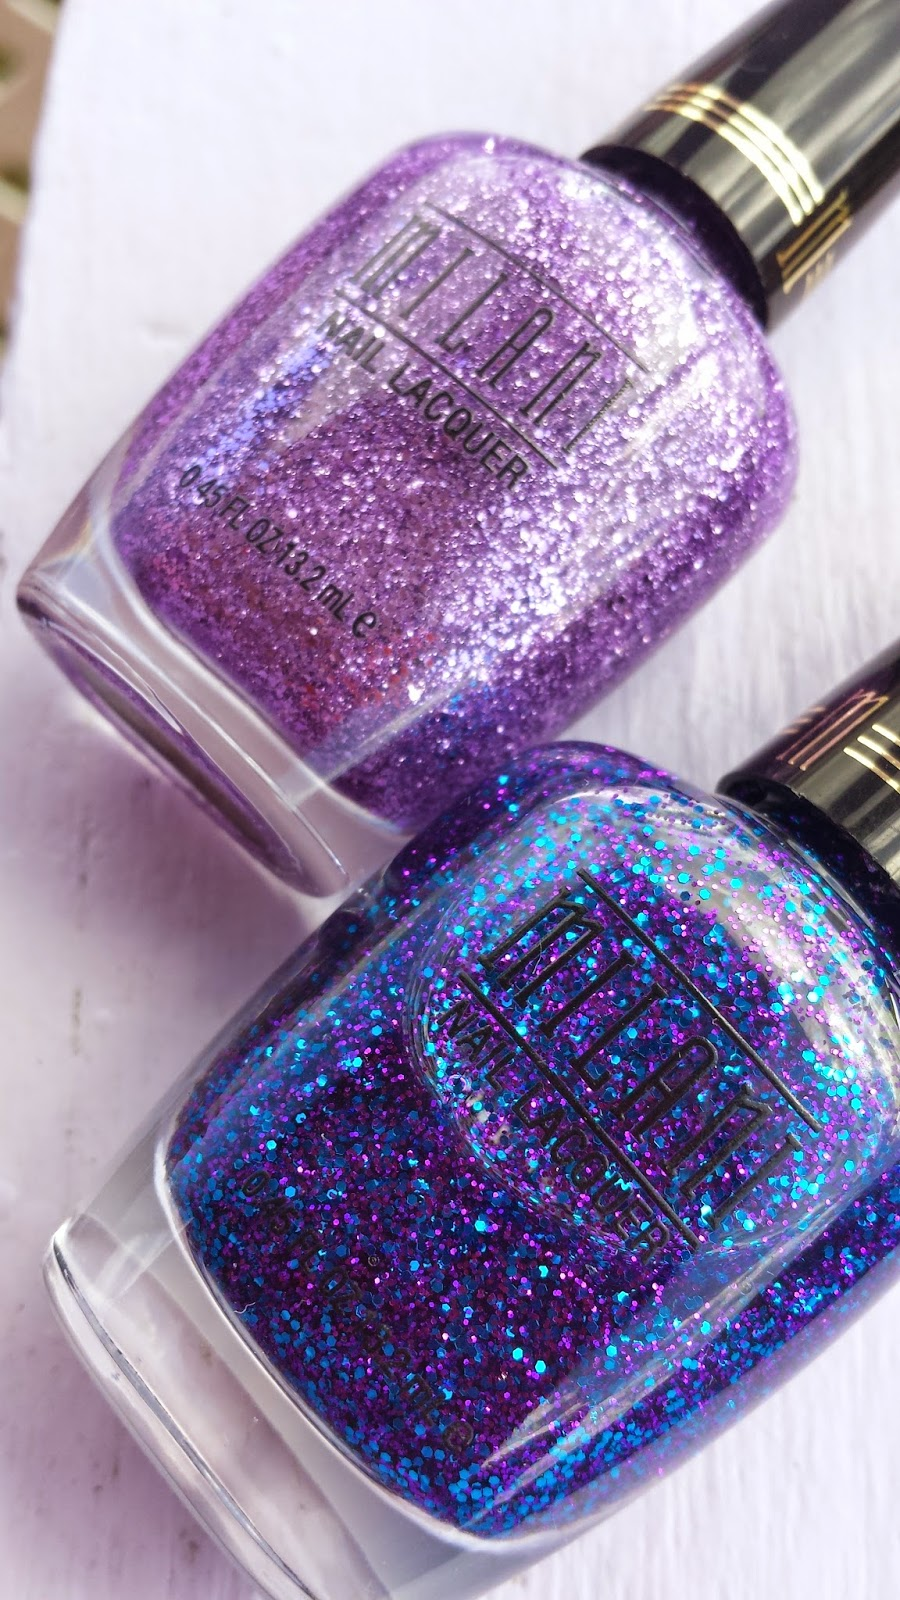 Milani 'Lavender Fizz' and 'Twinkle' glitters - www.modenmakeup.com